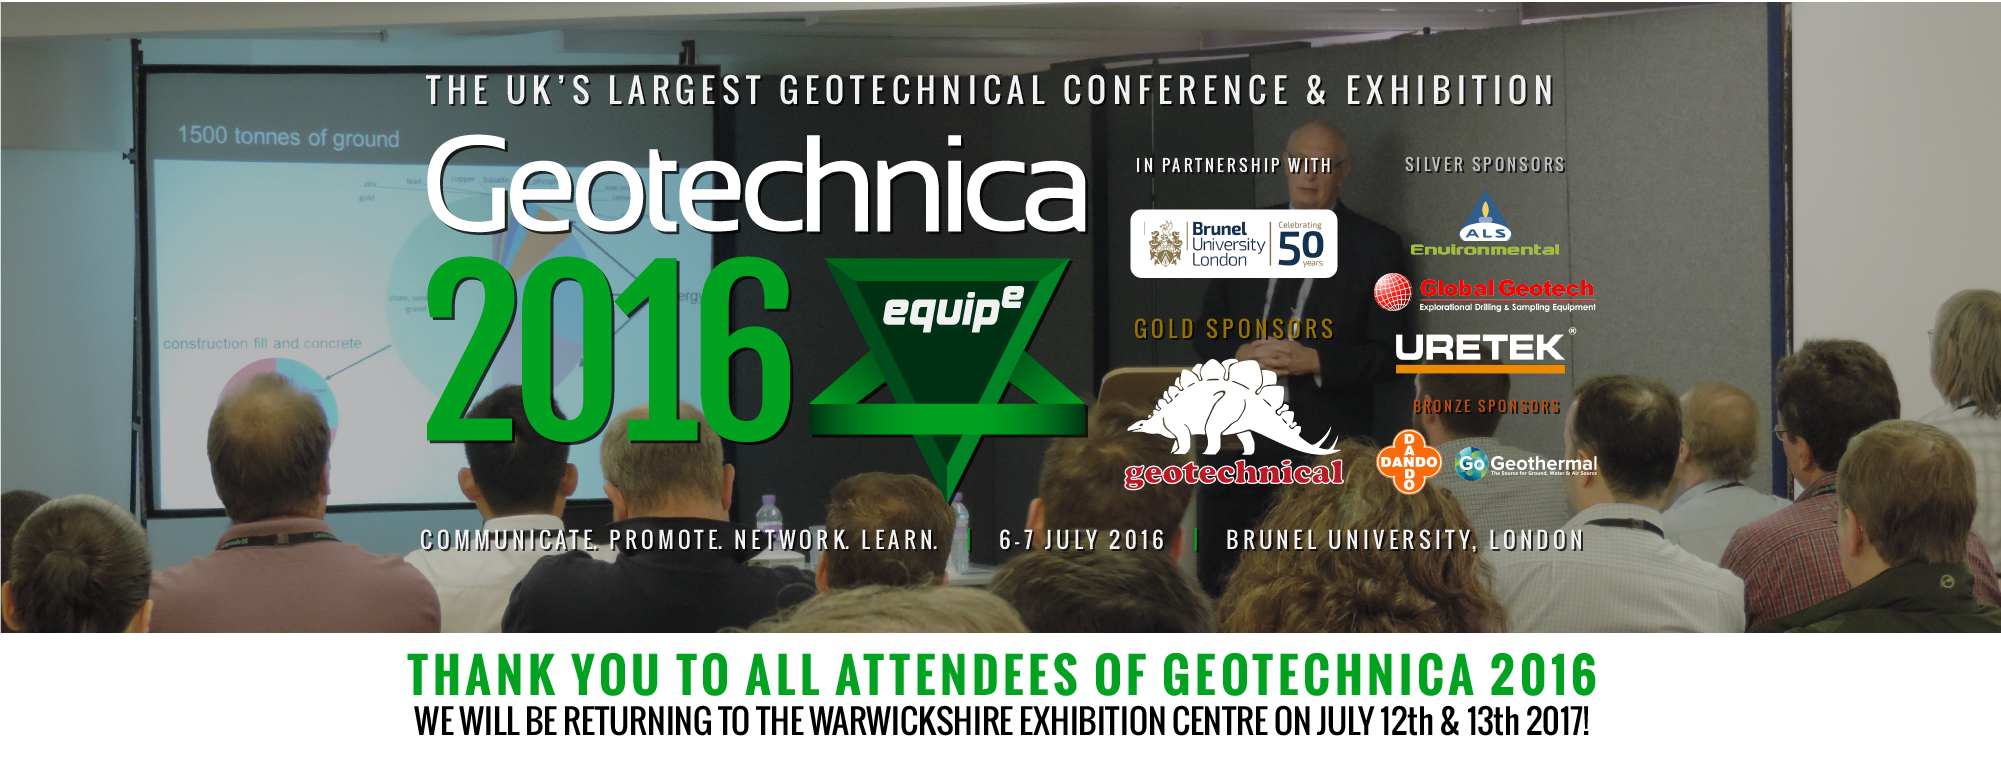 Geotechnica 2016 - The UK's Largest Geotechnical Conference and Exhibtiion